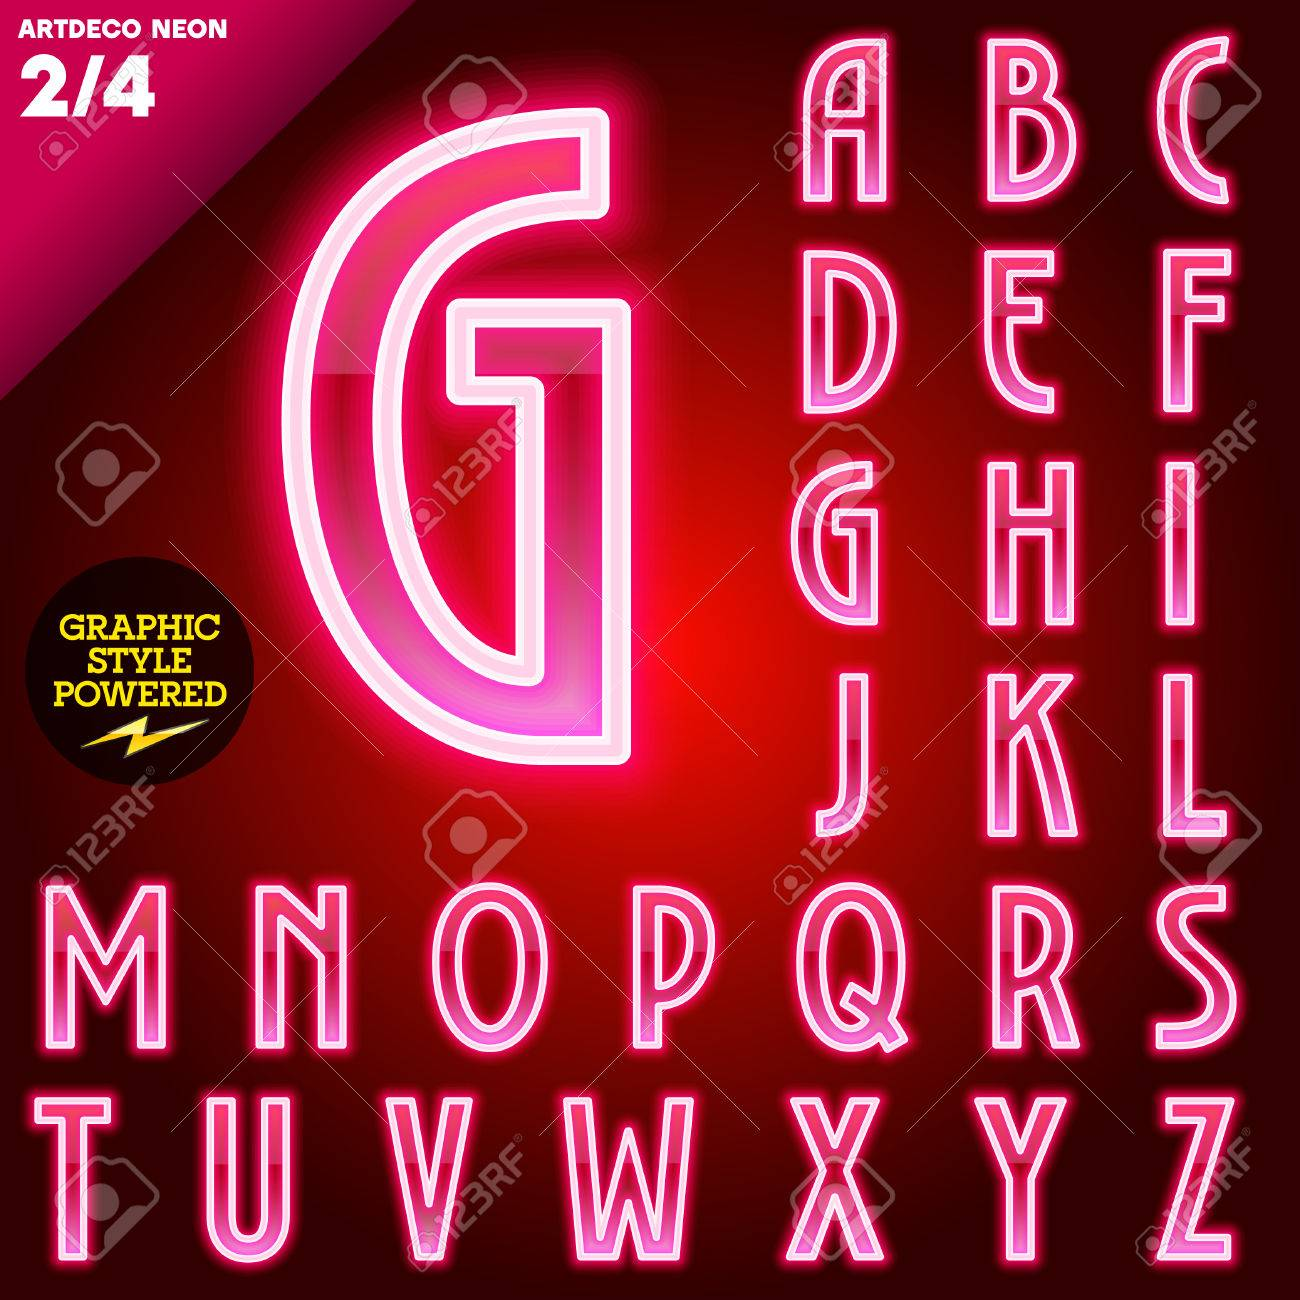 Vector Illustration D Abstrait Alphabet Tube Neon Pour La Pension